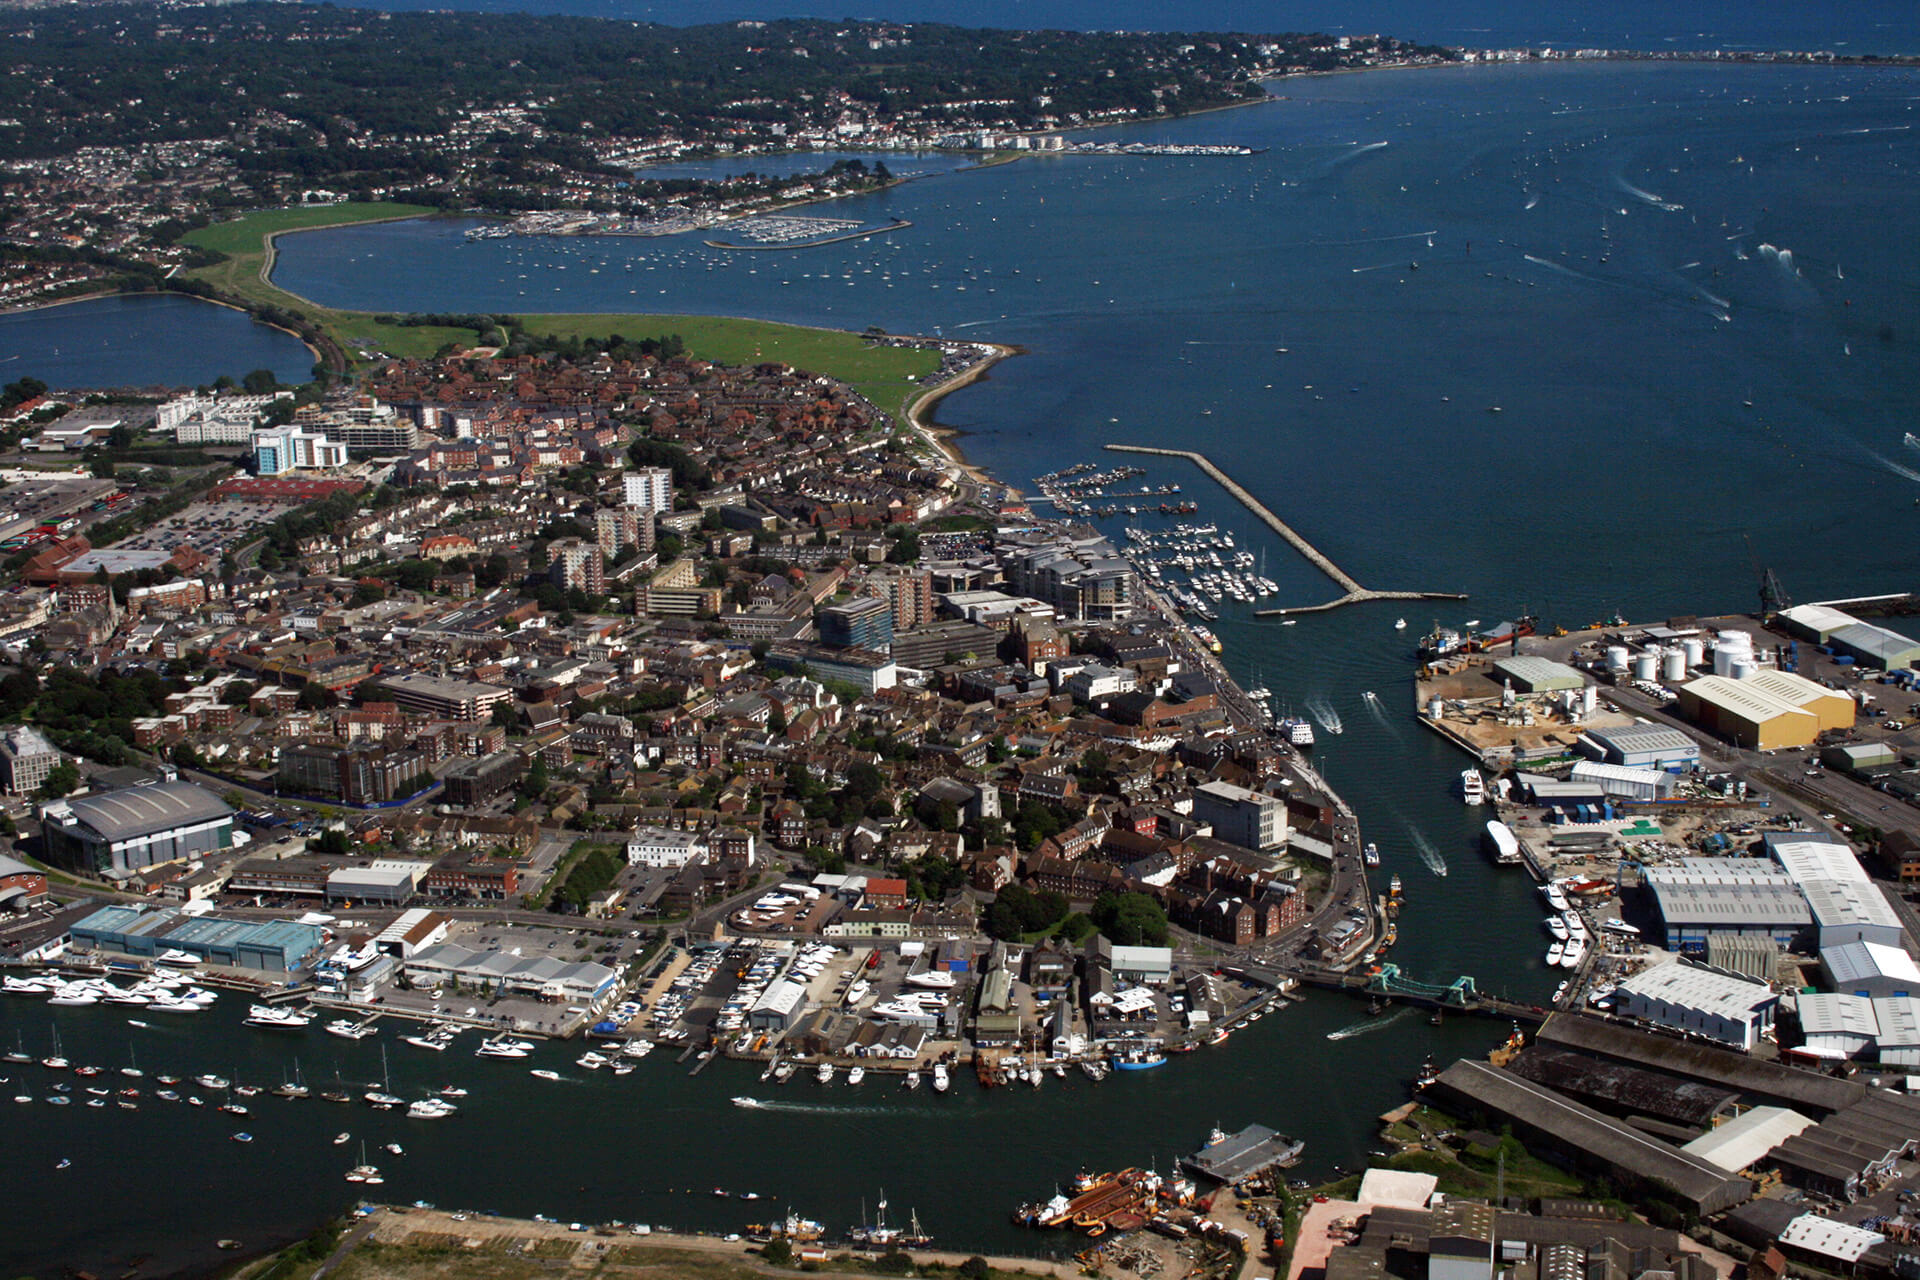 Poole, Bournemouth, Christchurch, Dorset